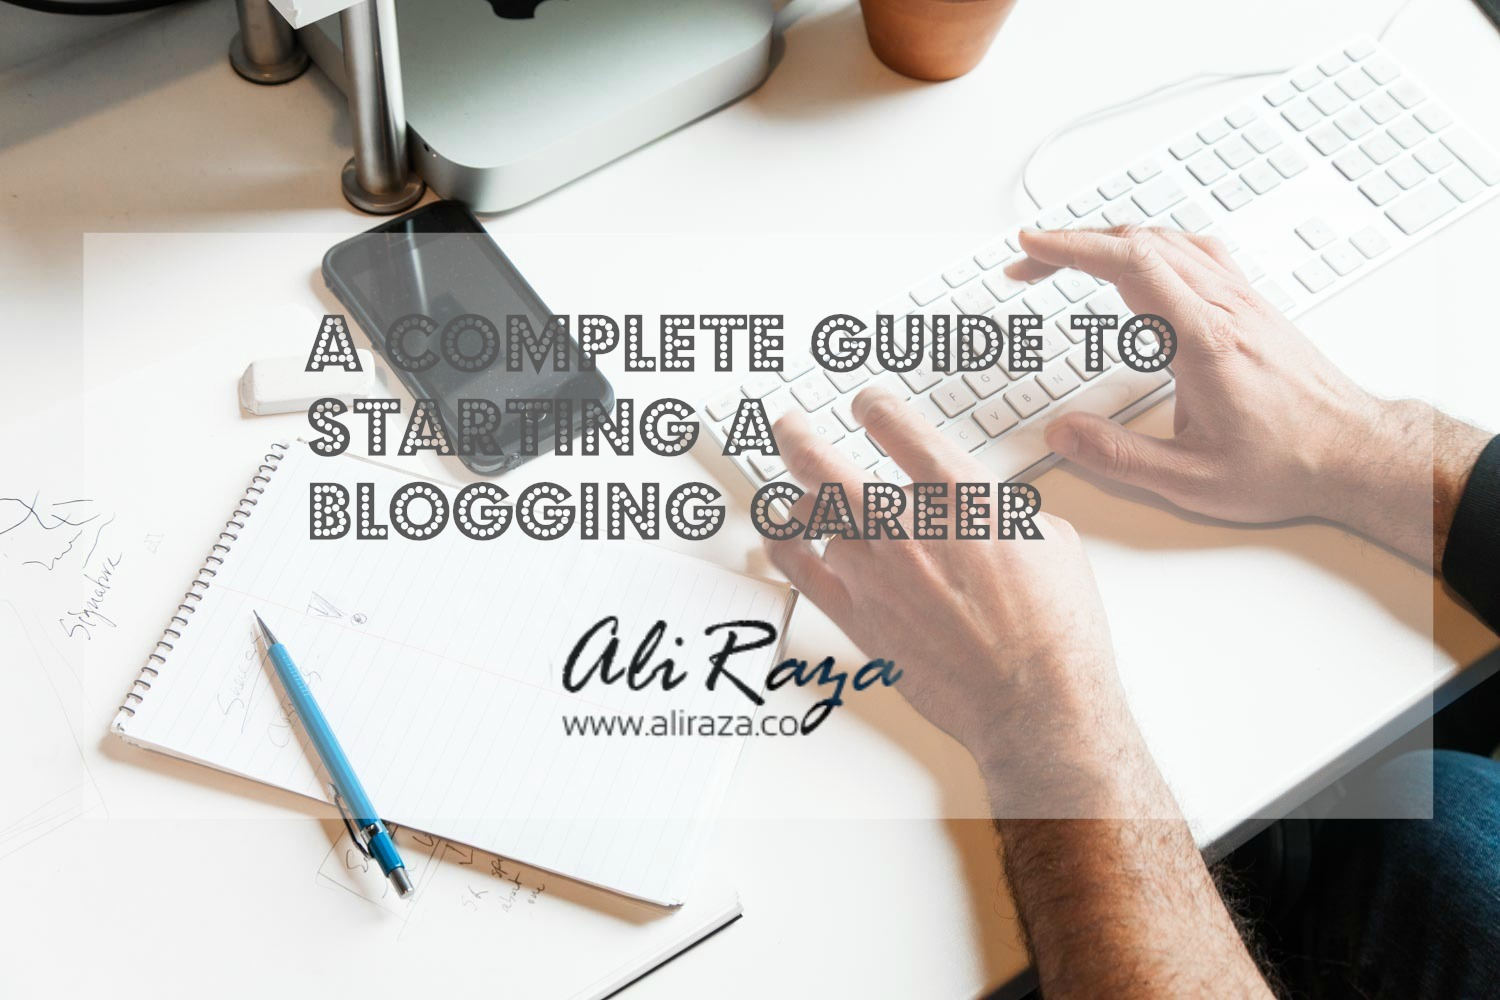 A Complete Guide to Starting a Blogging Career